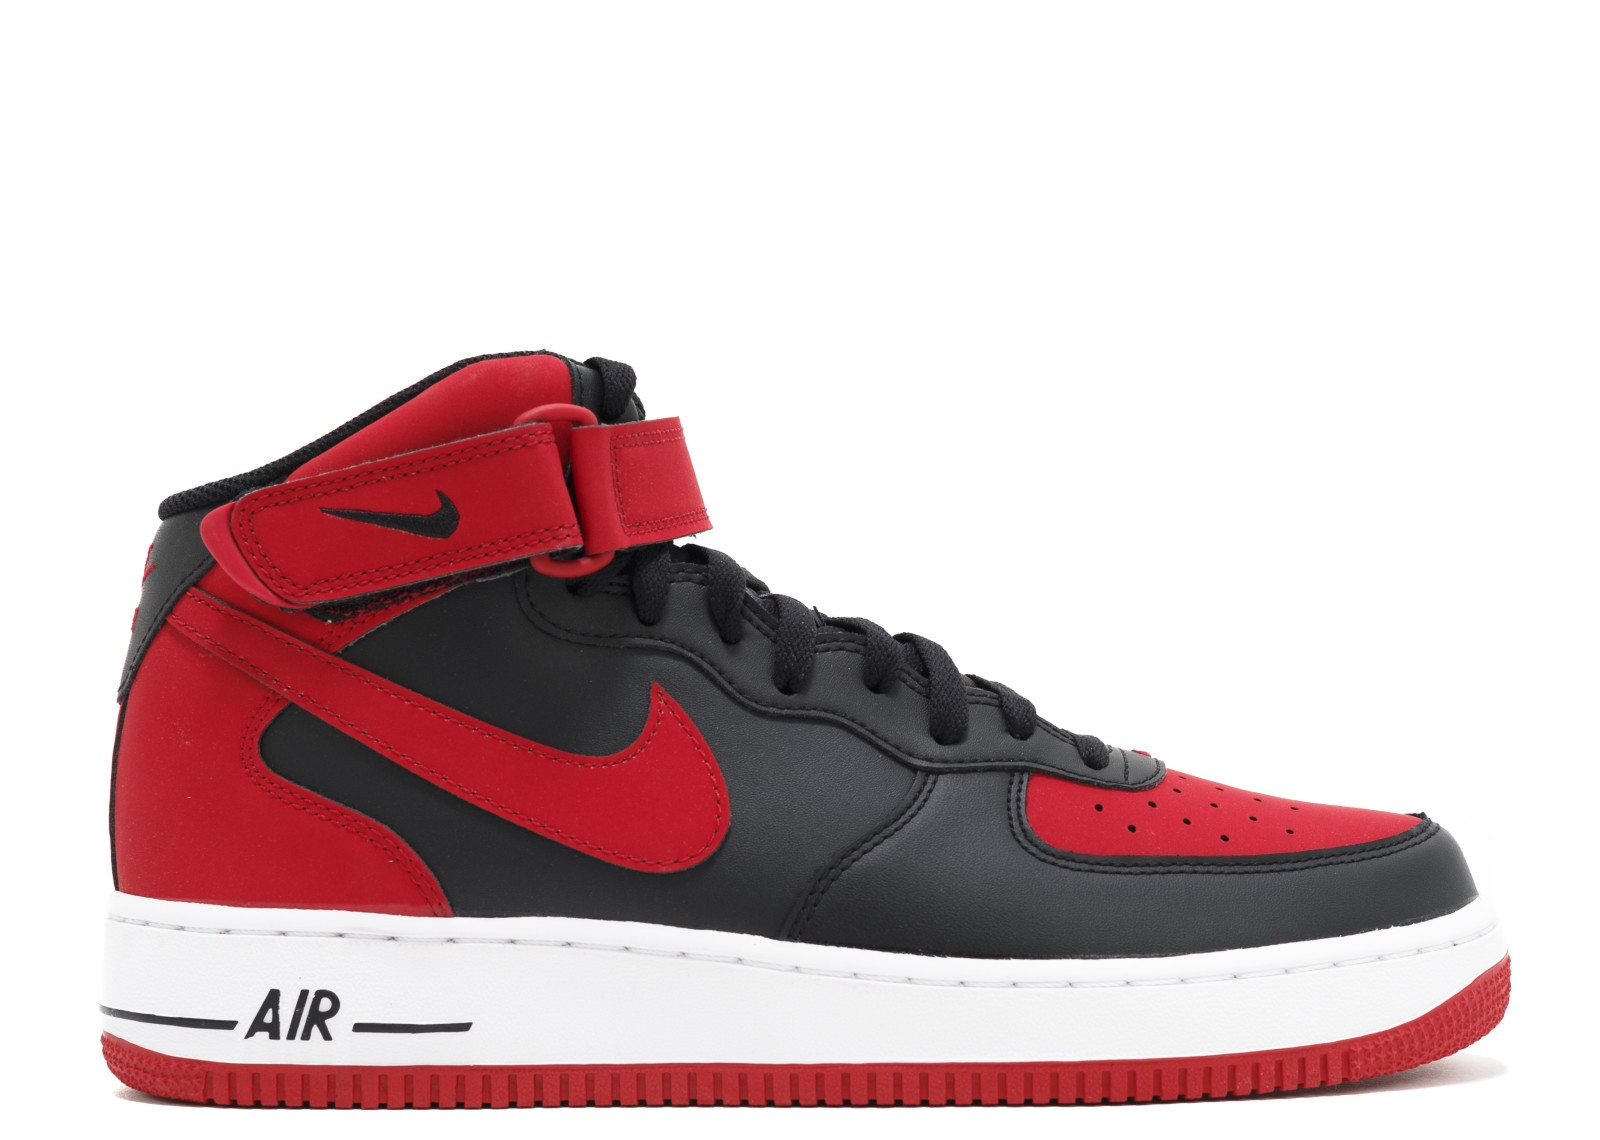 Nike Air Force 1 Mid 07 (Nere/Rosse/Bianche) - Uomo 315123 029